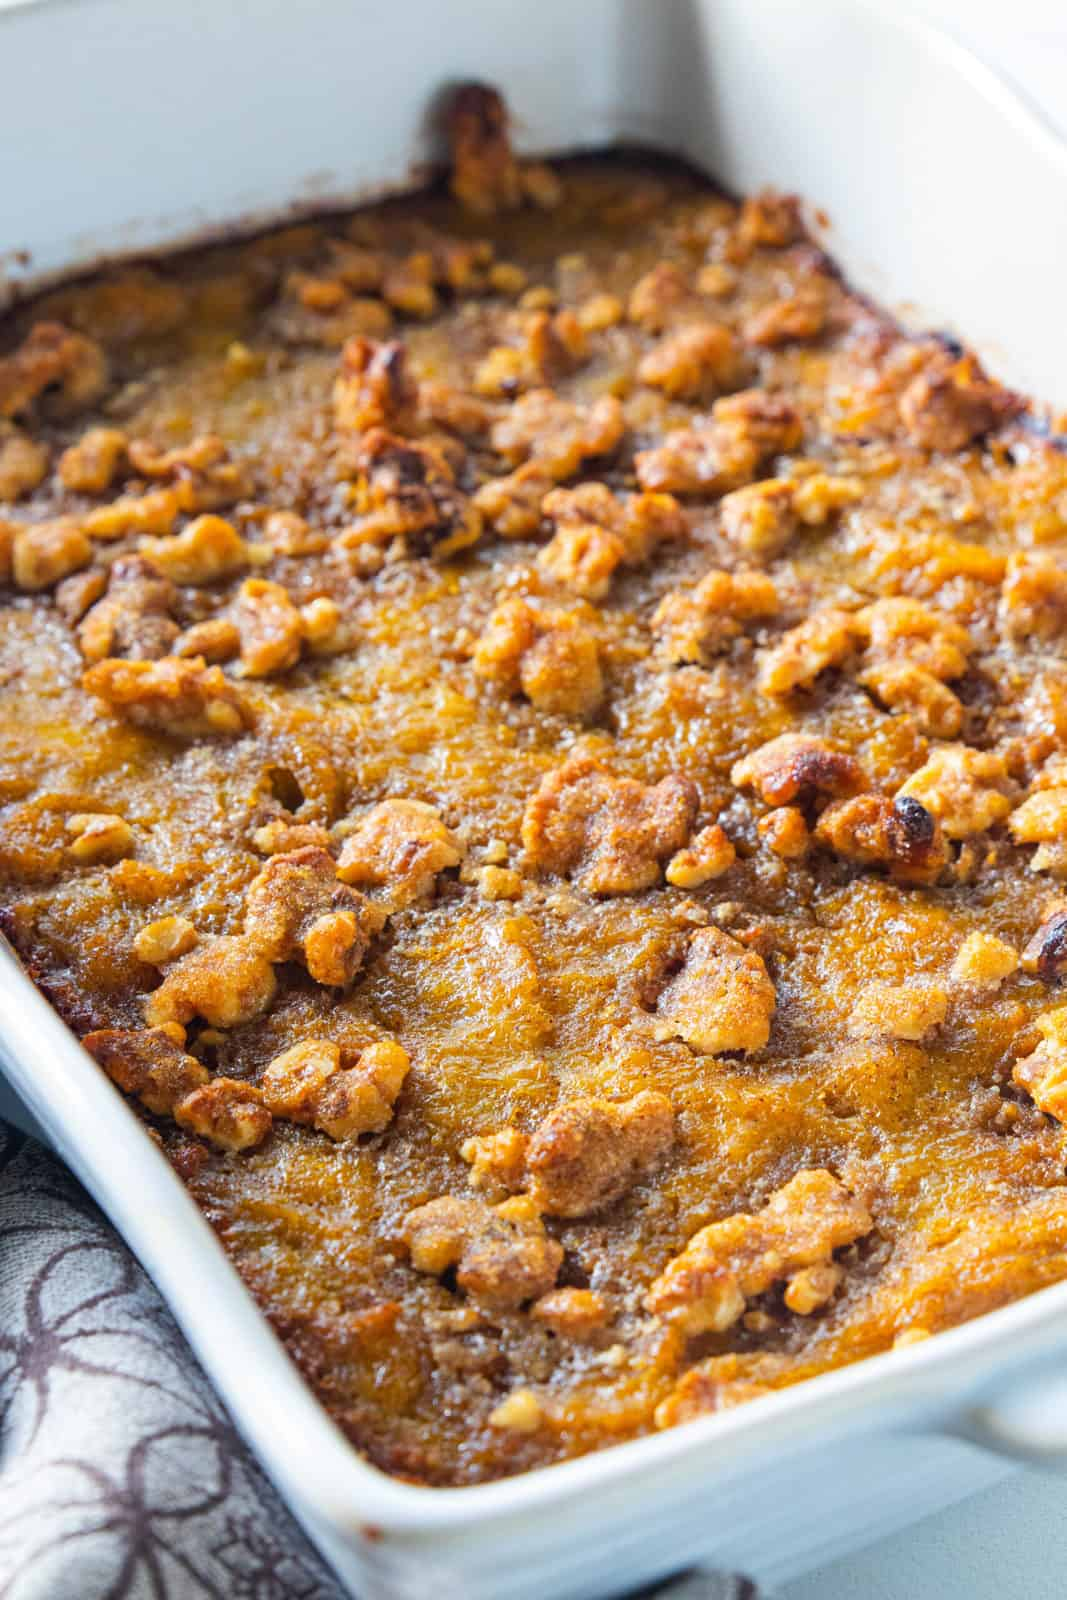 A white casserole dish filled with butternut squash casserole topped with roasted walnuts.